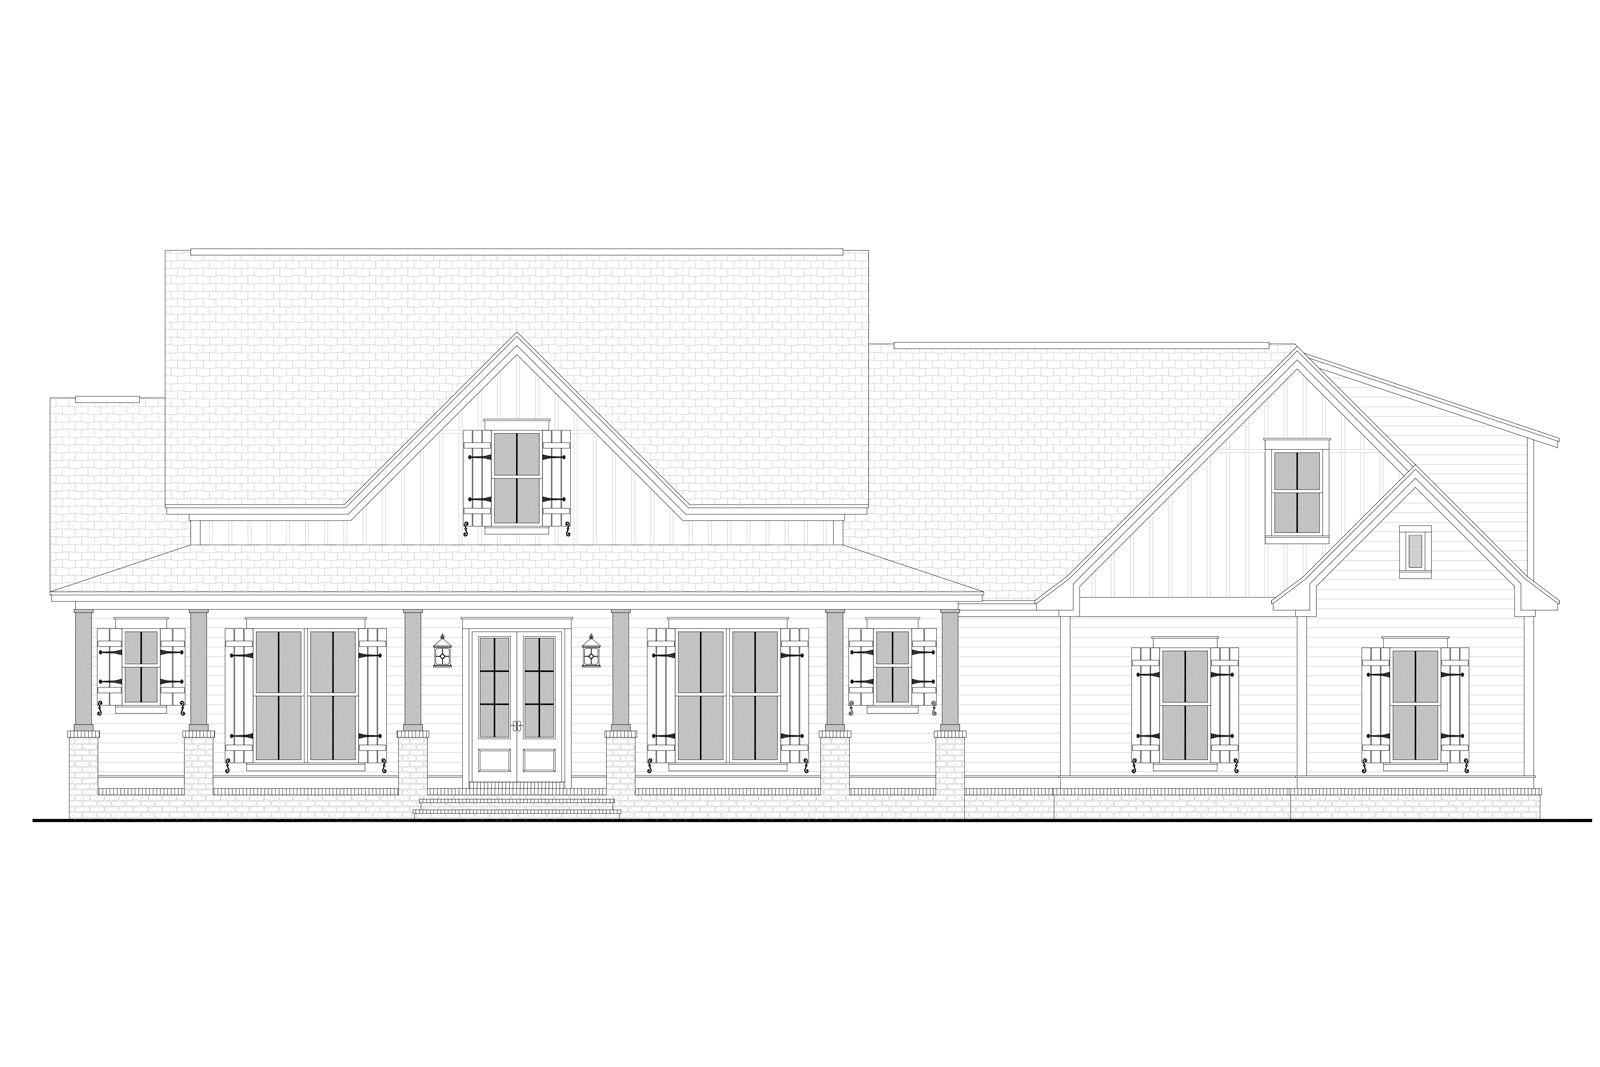 This house plan is now live, see it at  https://hpzplans.com/products/farmington-house-plan.